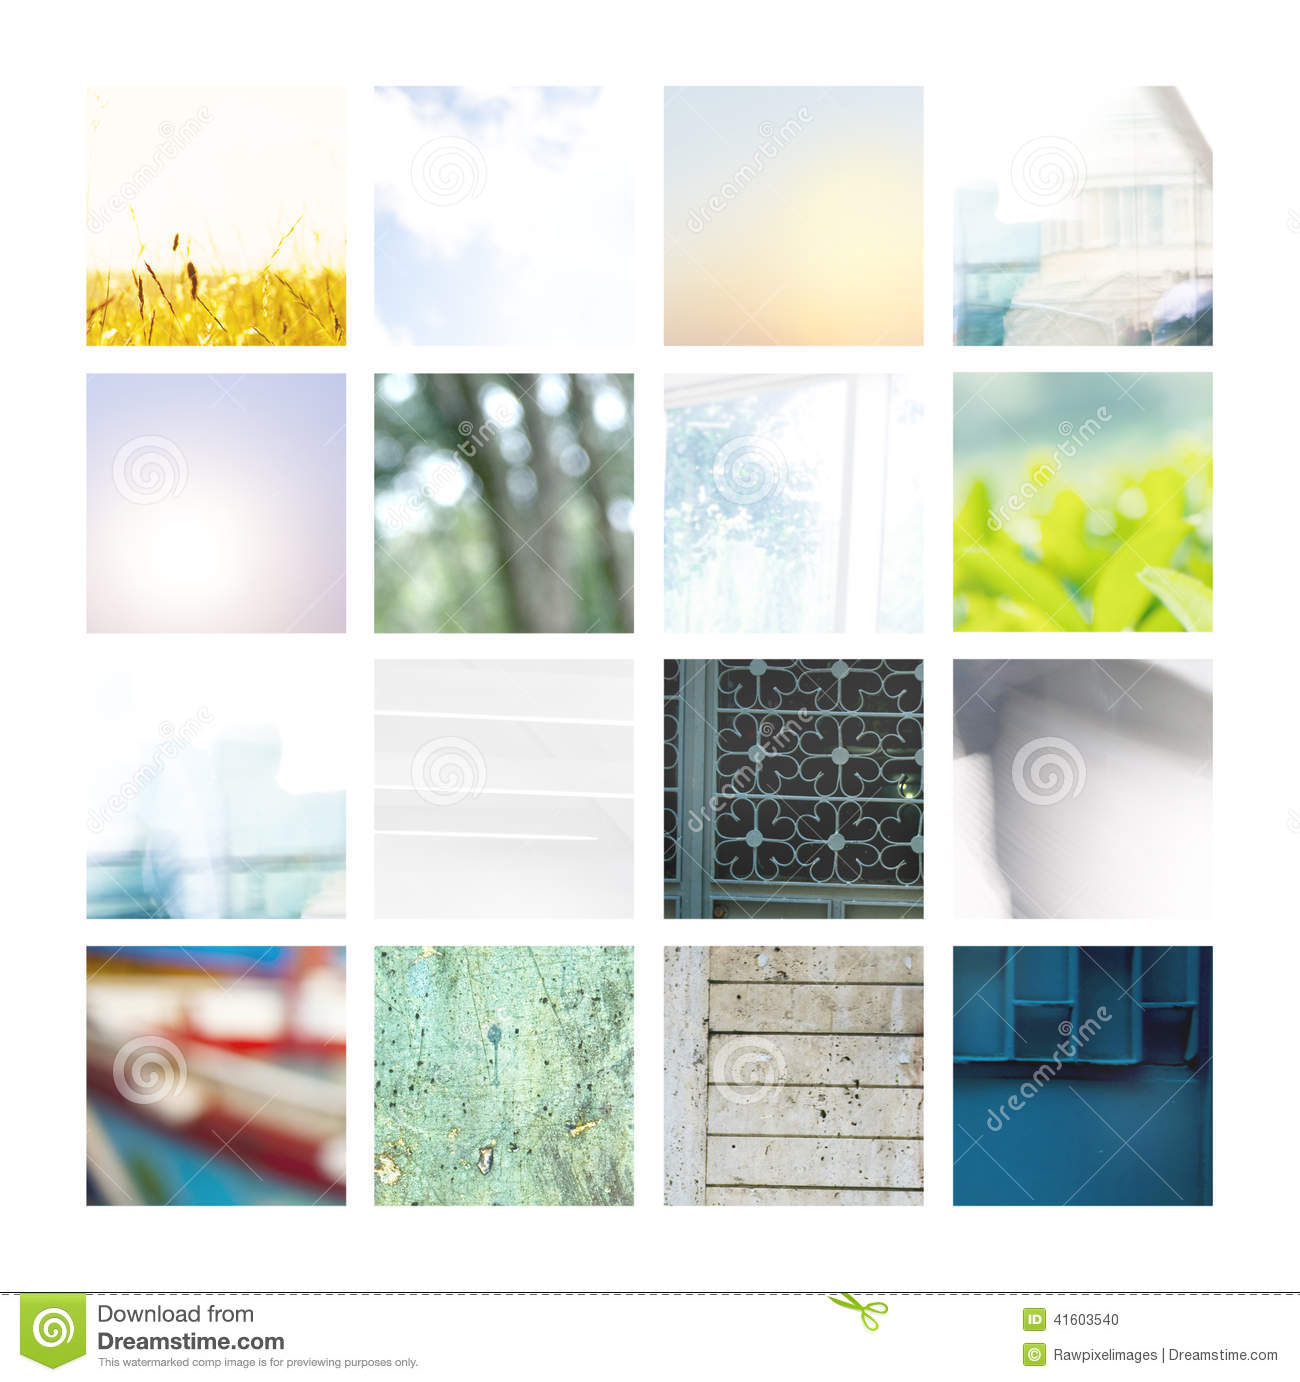 Collection of Natural Backgrounds and Patterns